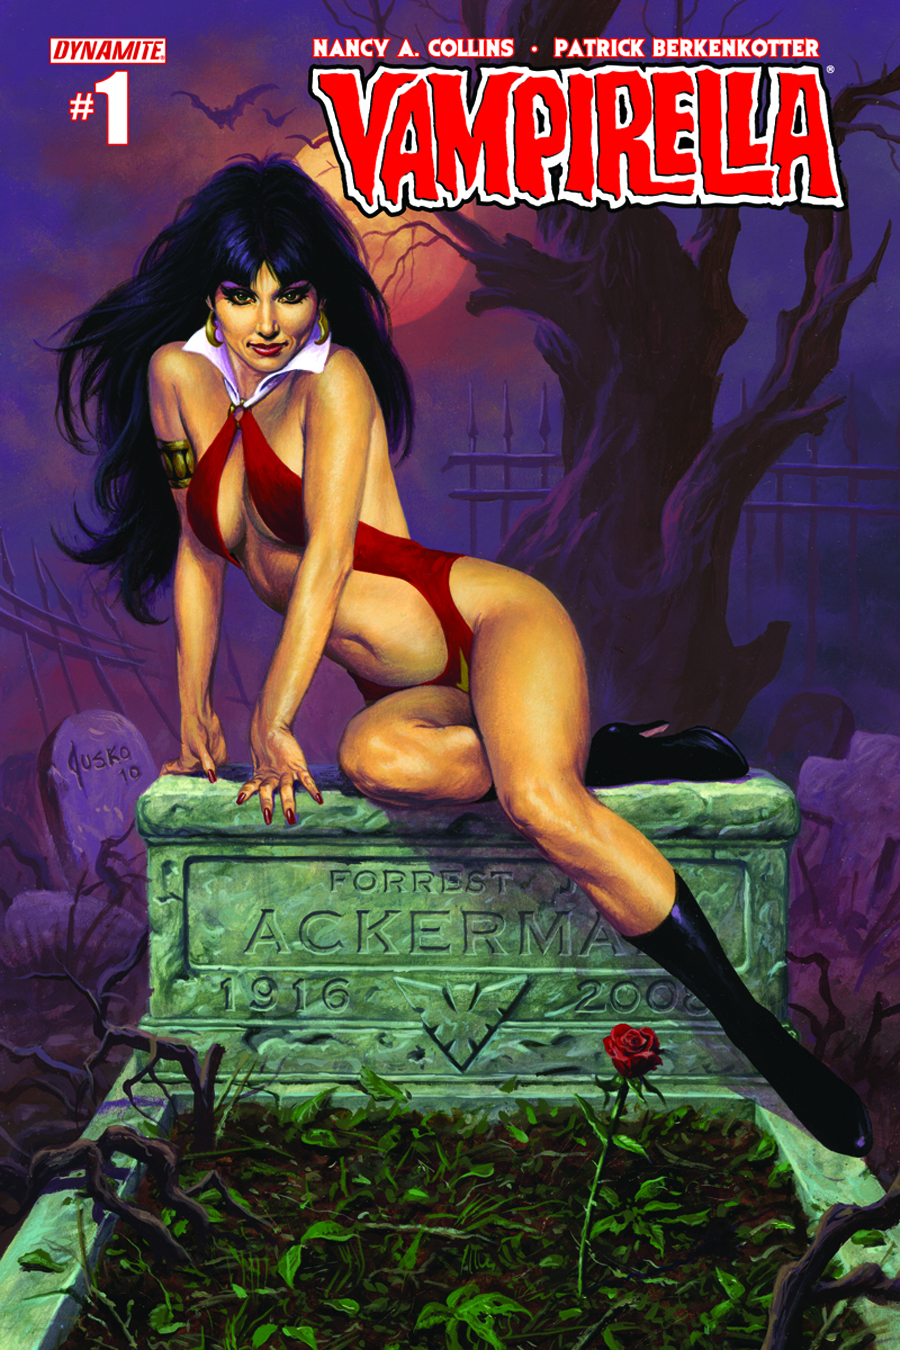 (USE APR148470) NEW VAMPIRELLA #1 CVR D JUSKO